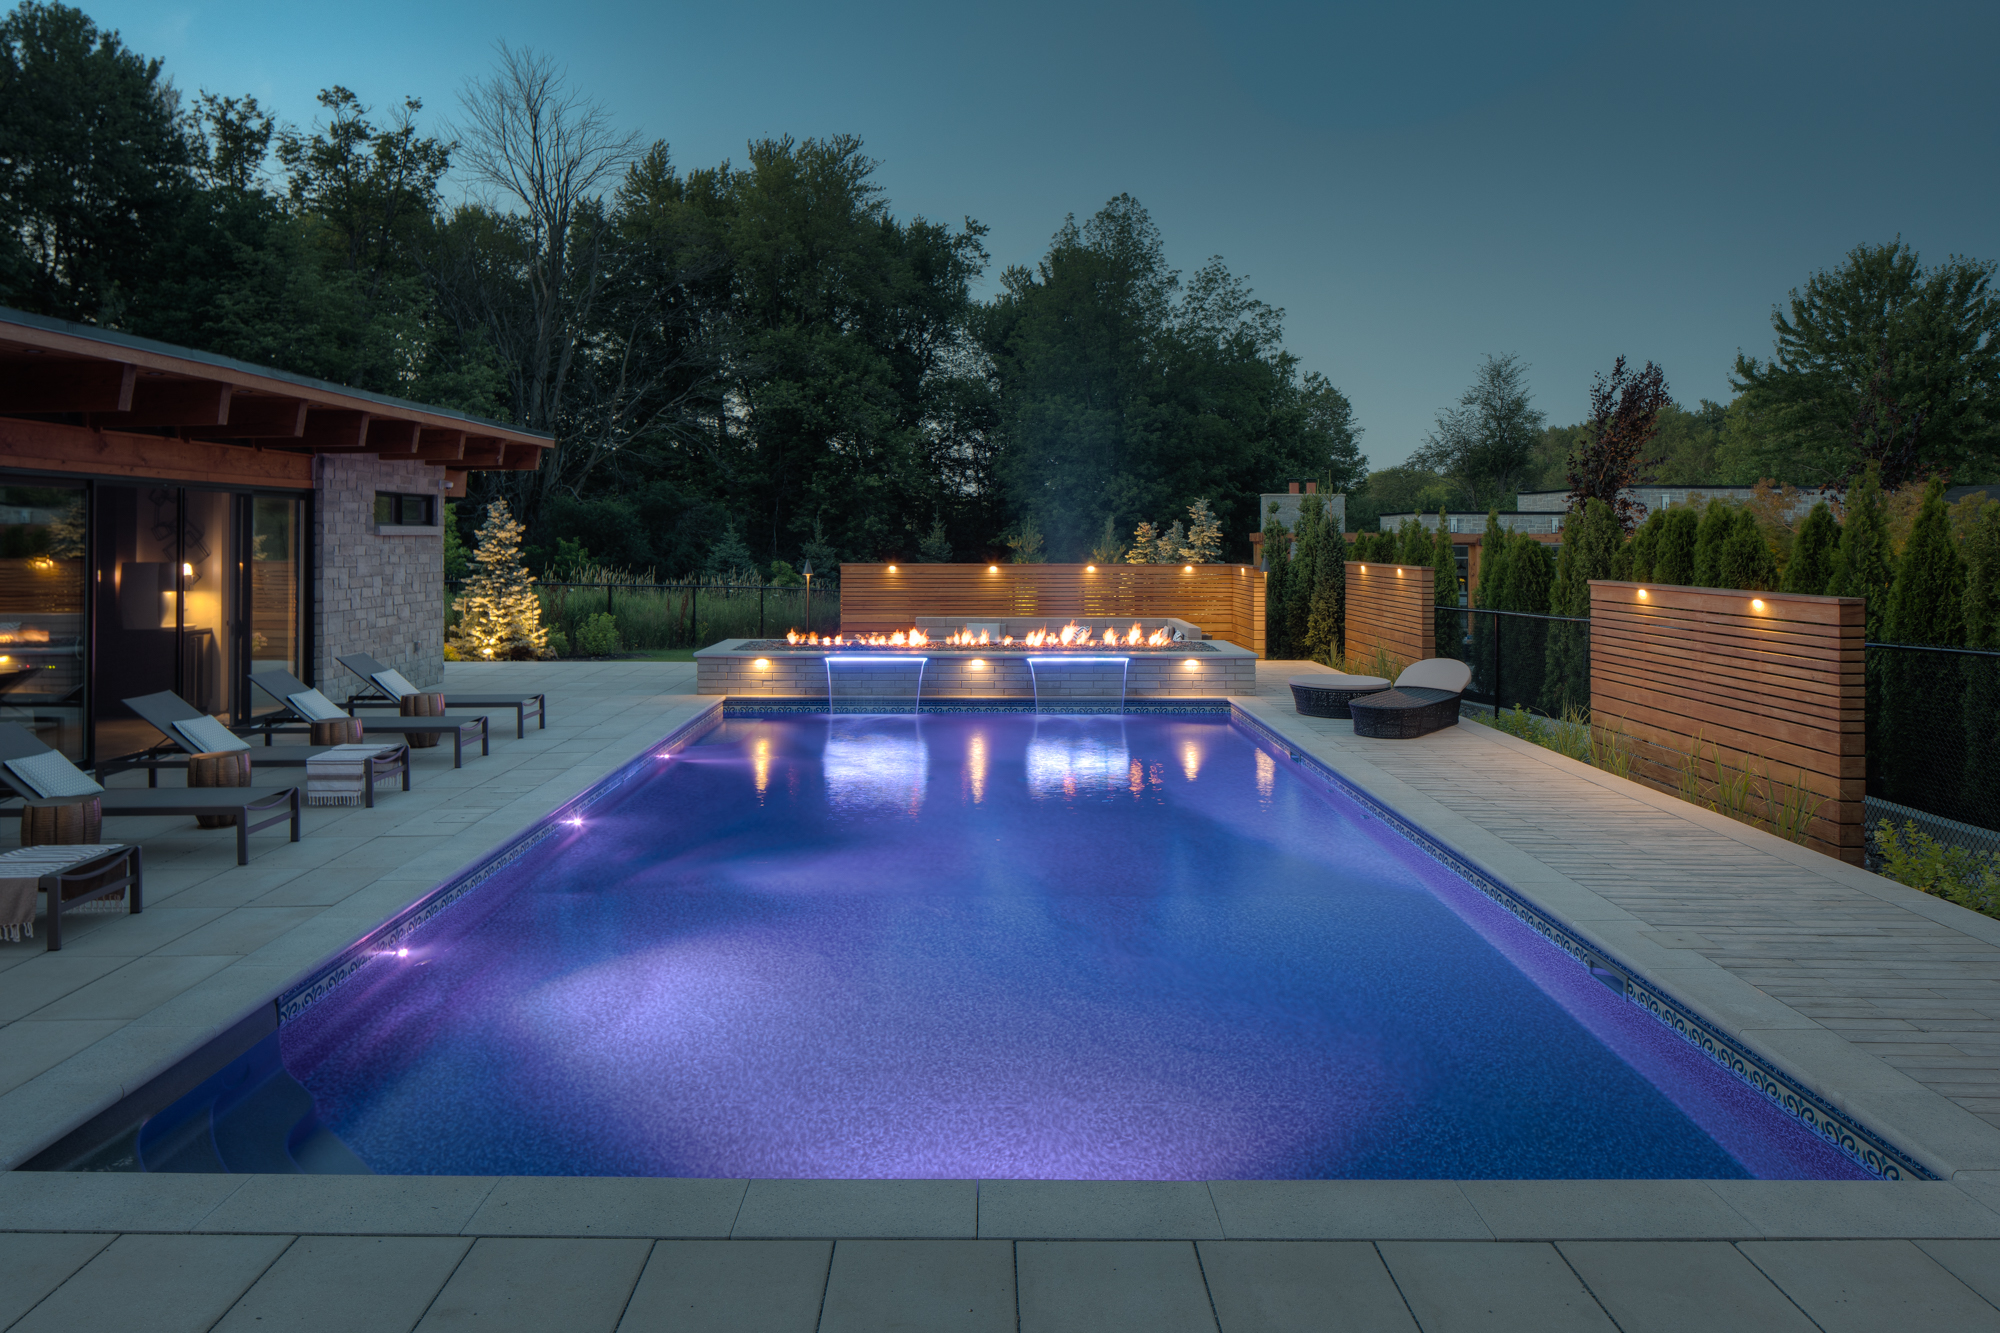 An inground swimming pool, built by a swimming pool contractor